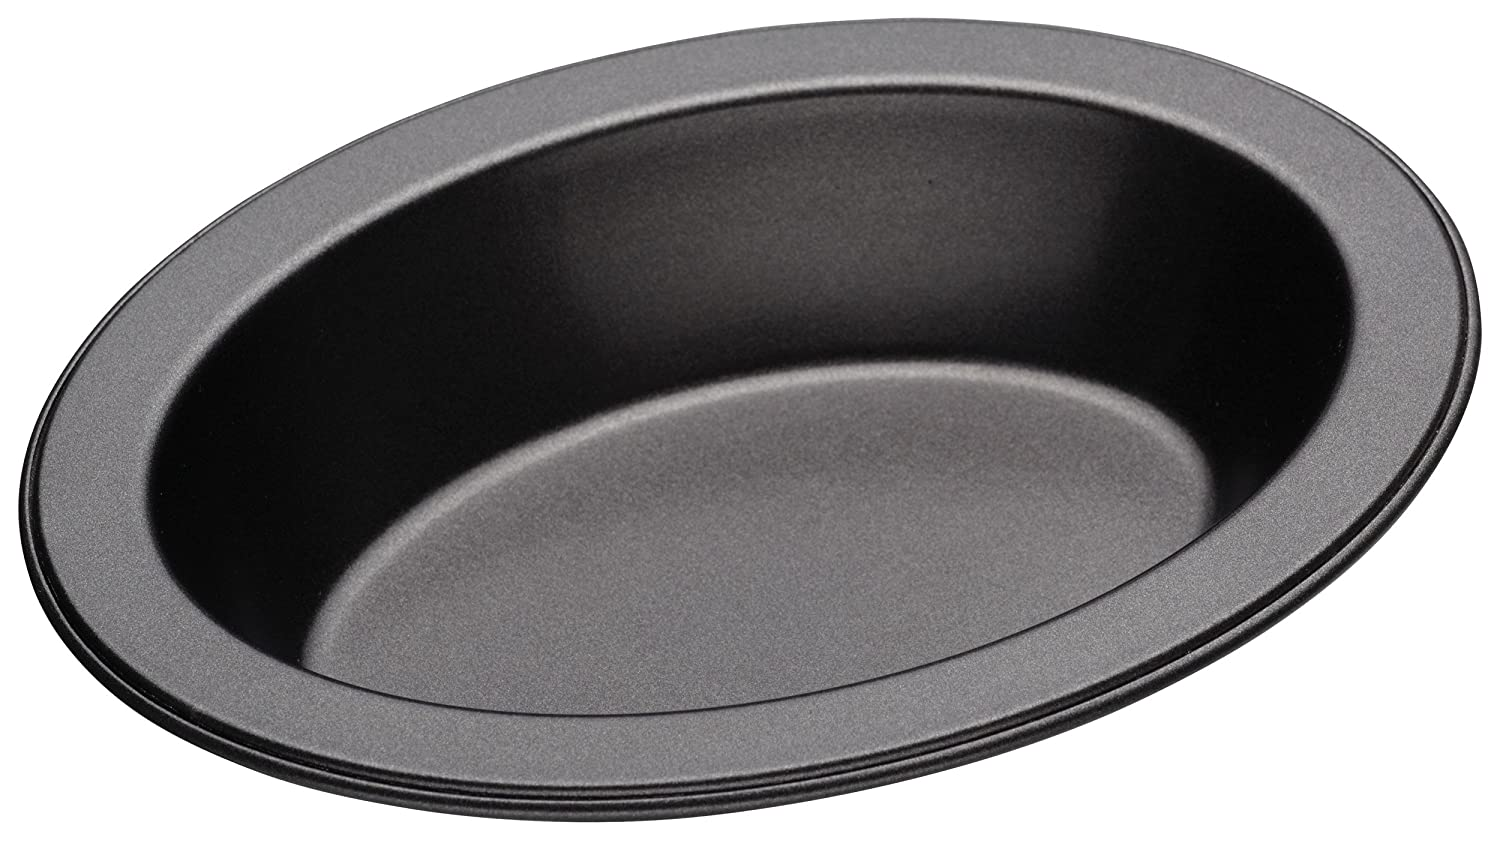 KitchenCraft MasterClass Non-Stick Round Small Inidual Pie Dish 10 cm (4 ) Amazon.co.uk Kitchen u0026 Home  sc 1 st  Amazon UK : small pie plate - pezcame.com